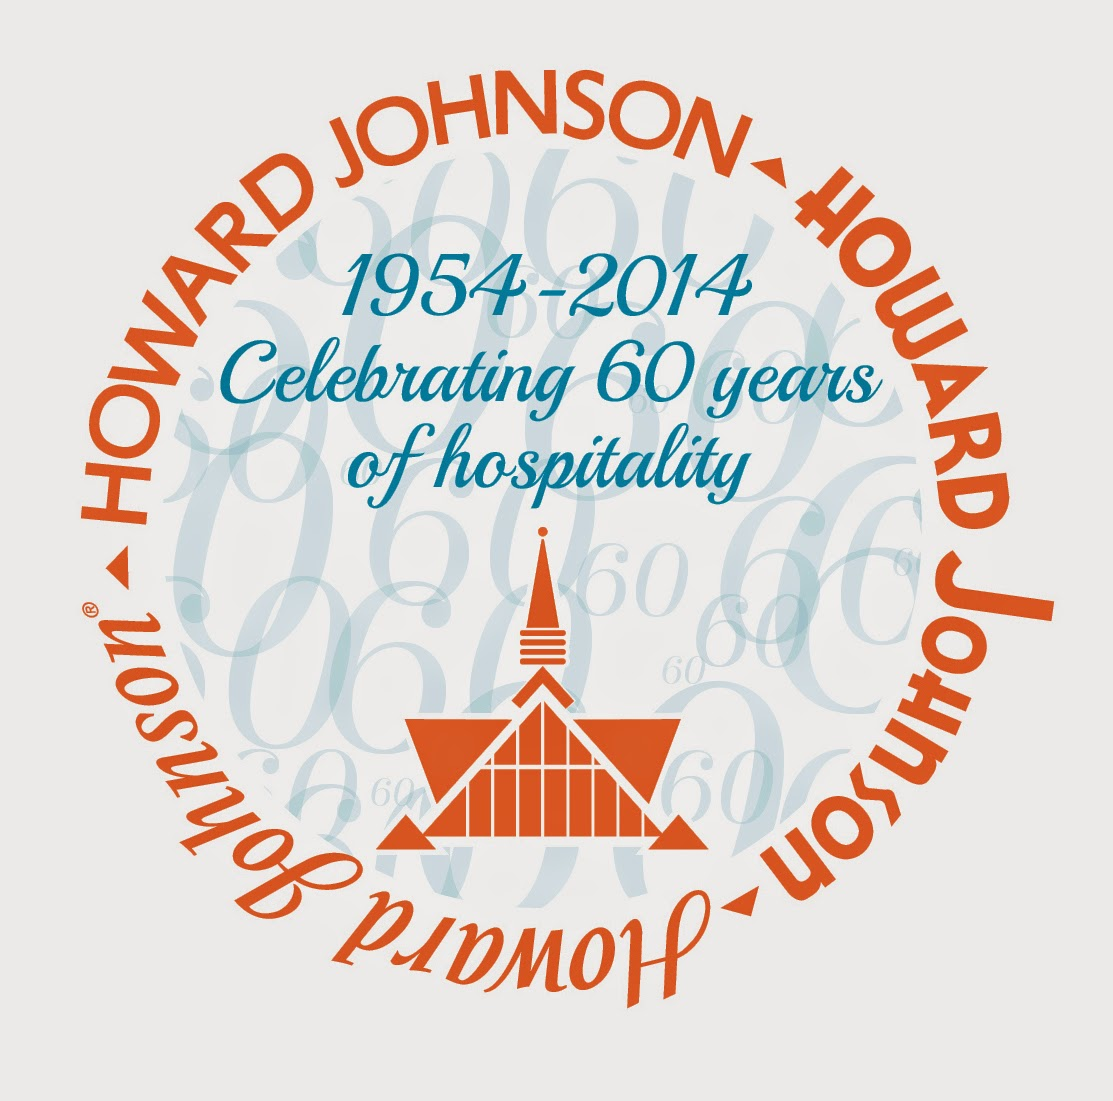 Howard Johnson's Orange Wednesday Promotion: Travelers Save 50 Percent on Their Hotel Stay! via www.productreviewmom.com